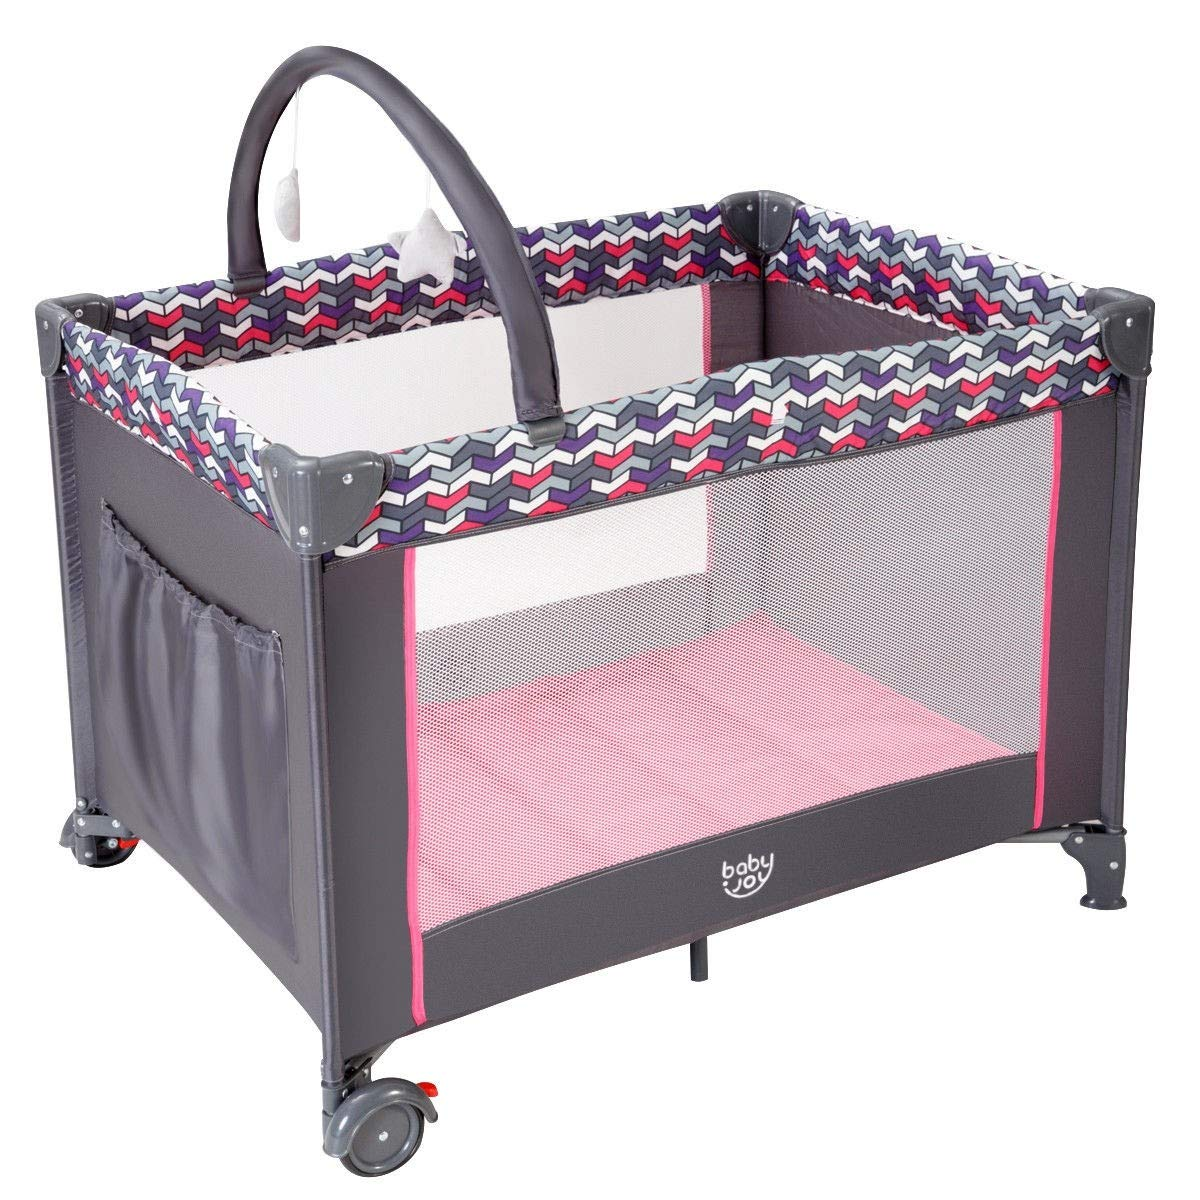 Folding Travel Baby Crib Playpen with Baby Toys Changing Table Infant Bassinet Bed by USA_BEST_SELLER